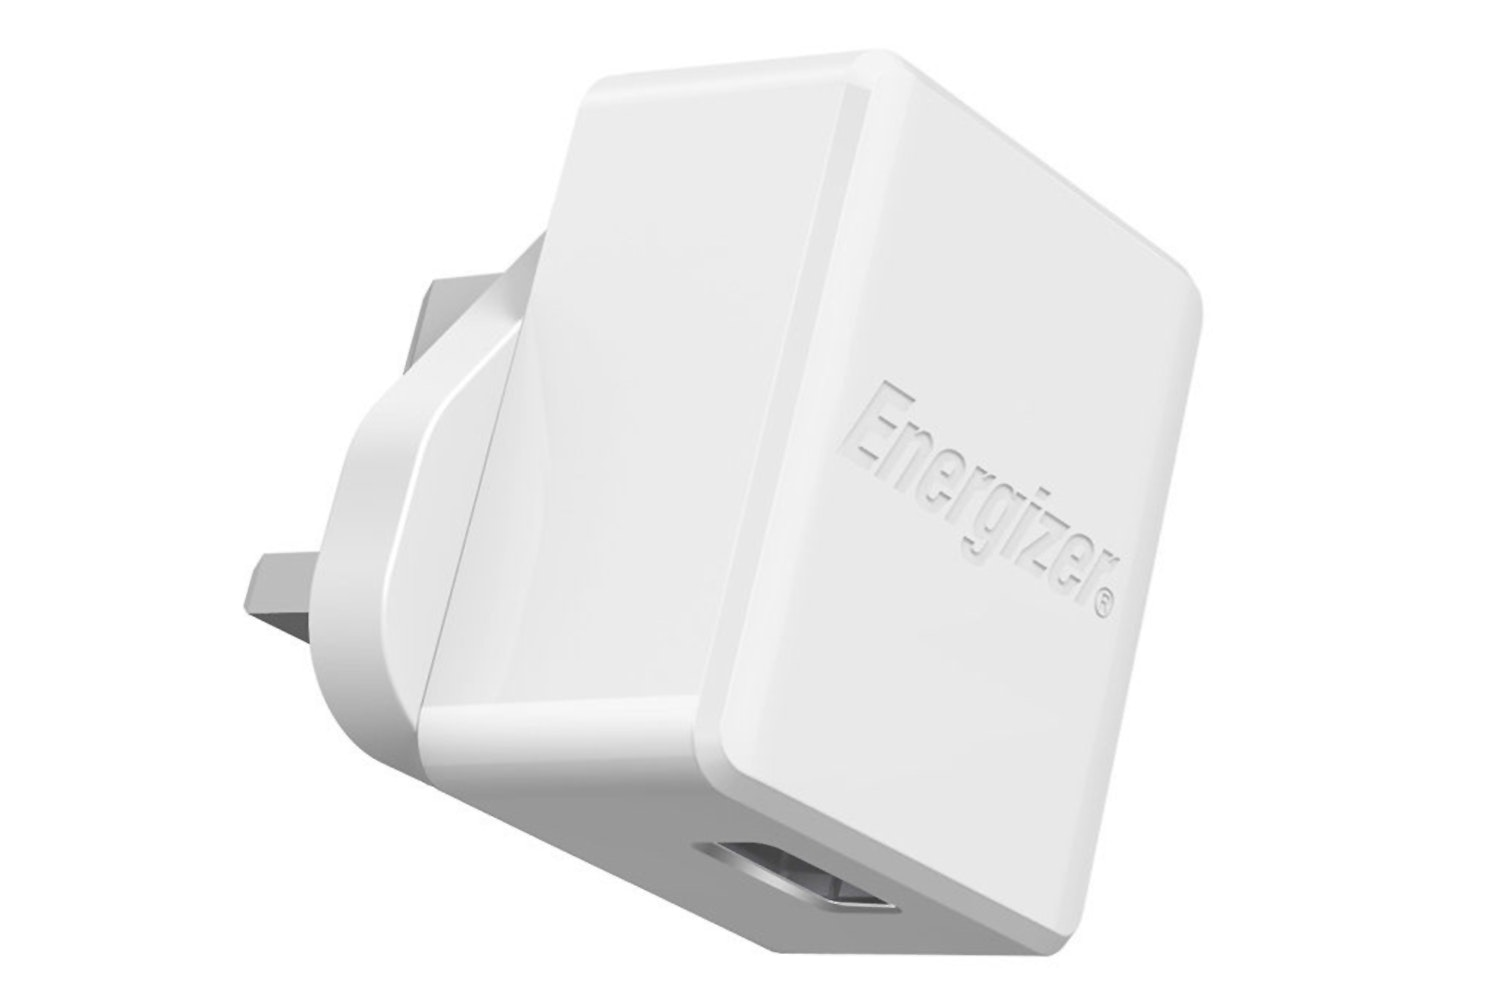 Energizer 2.4A USB Wall Charger with Lightning Cable | White